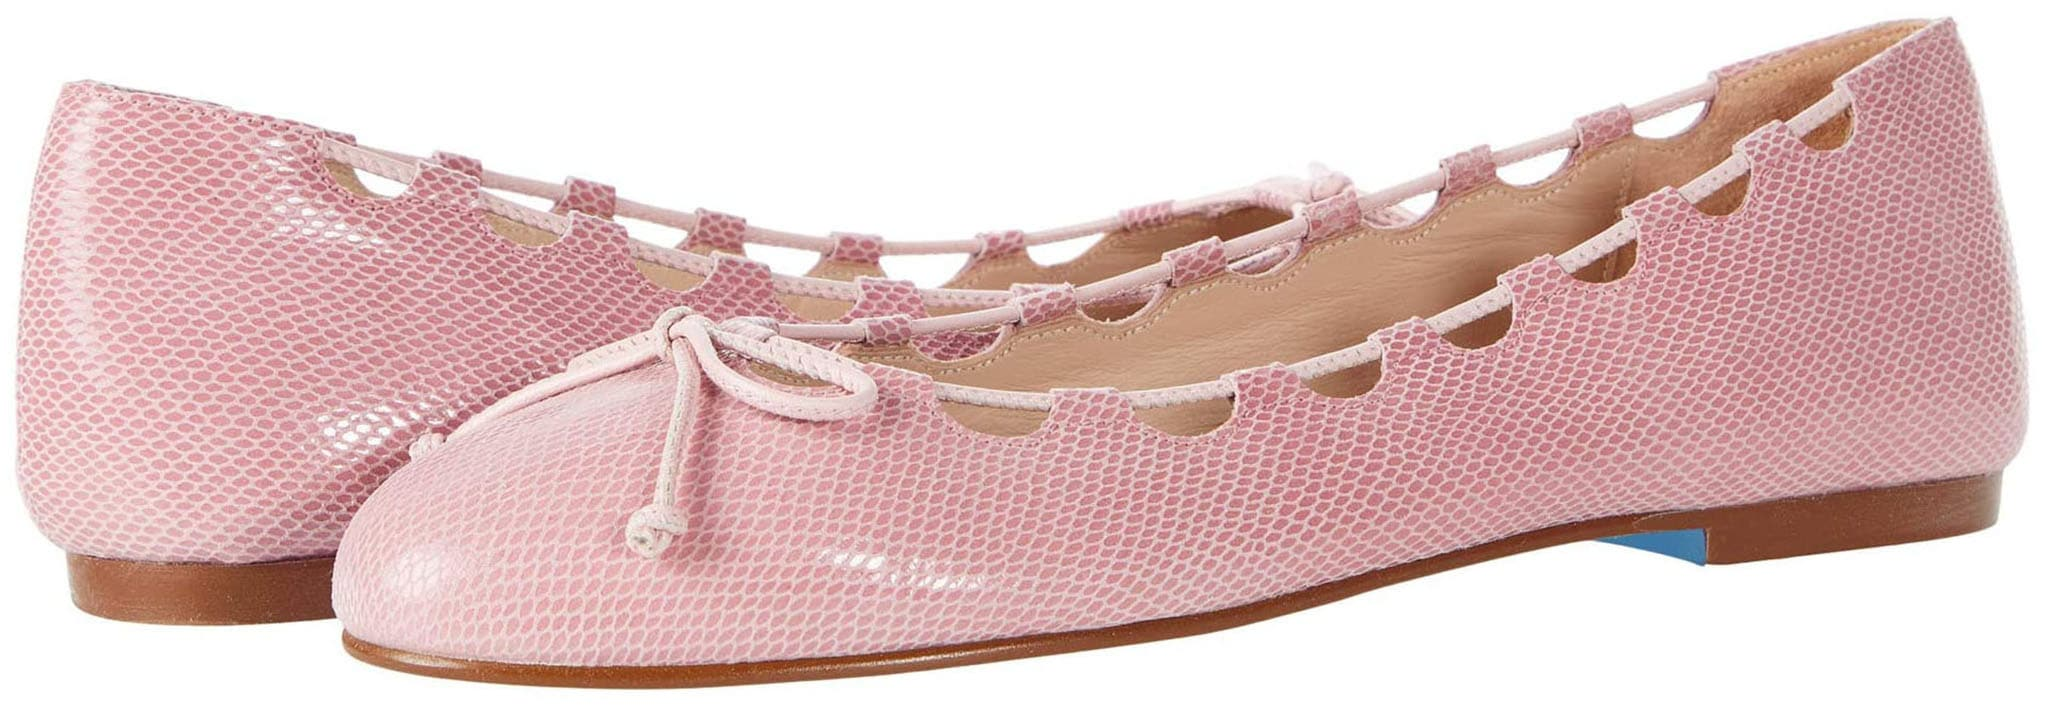 A modern ballet flat made from embossed leather with laced geometric cutouts and bow vamps